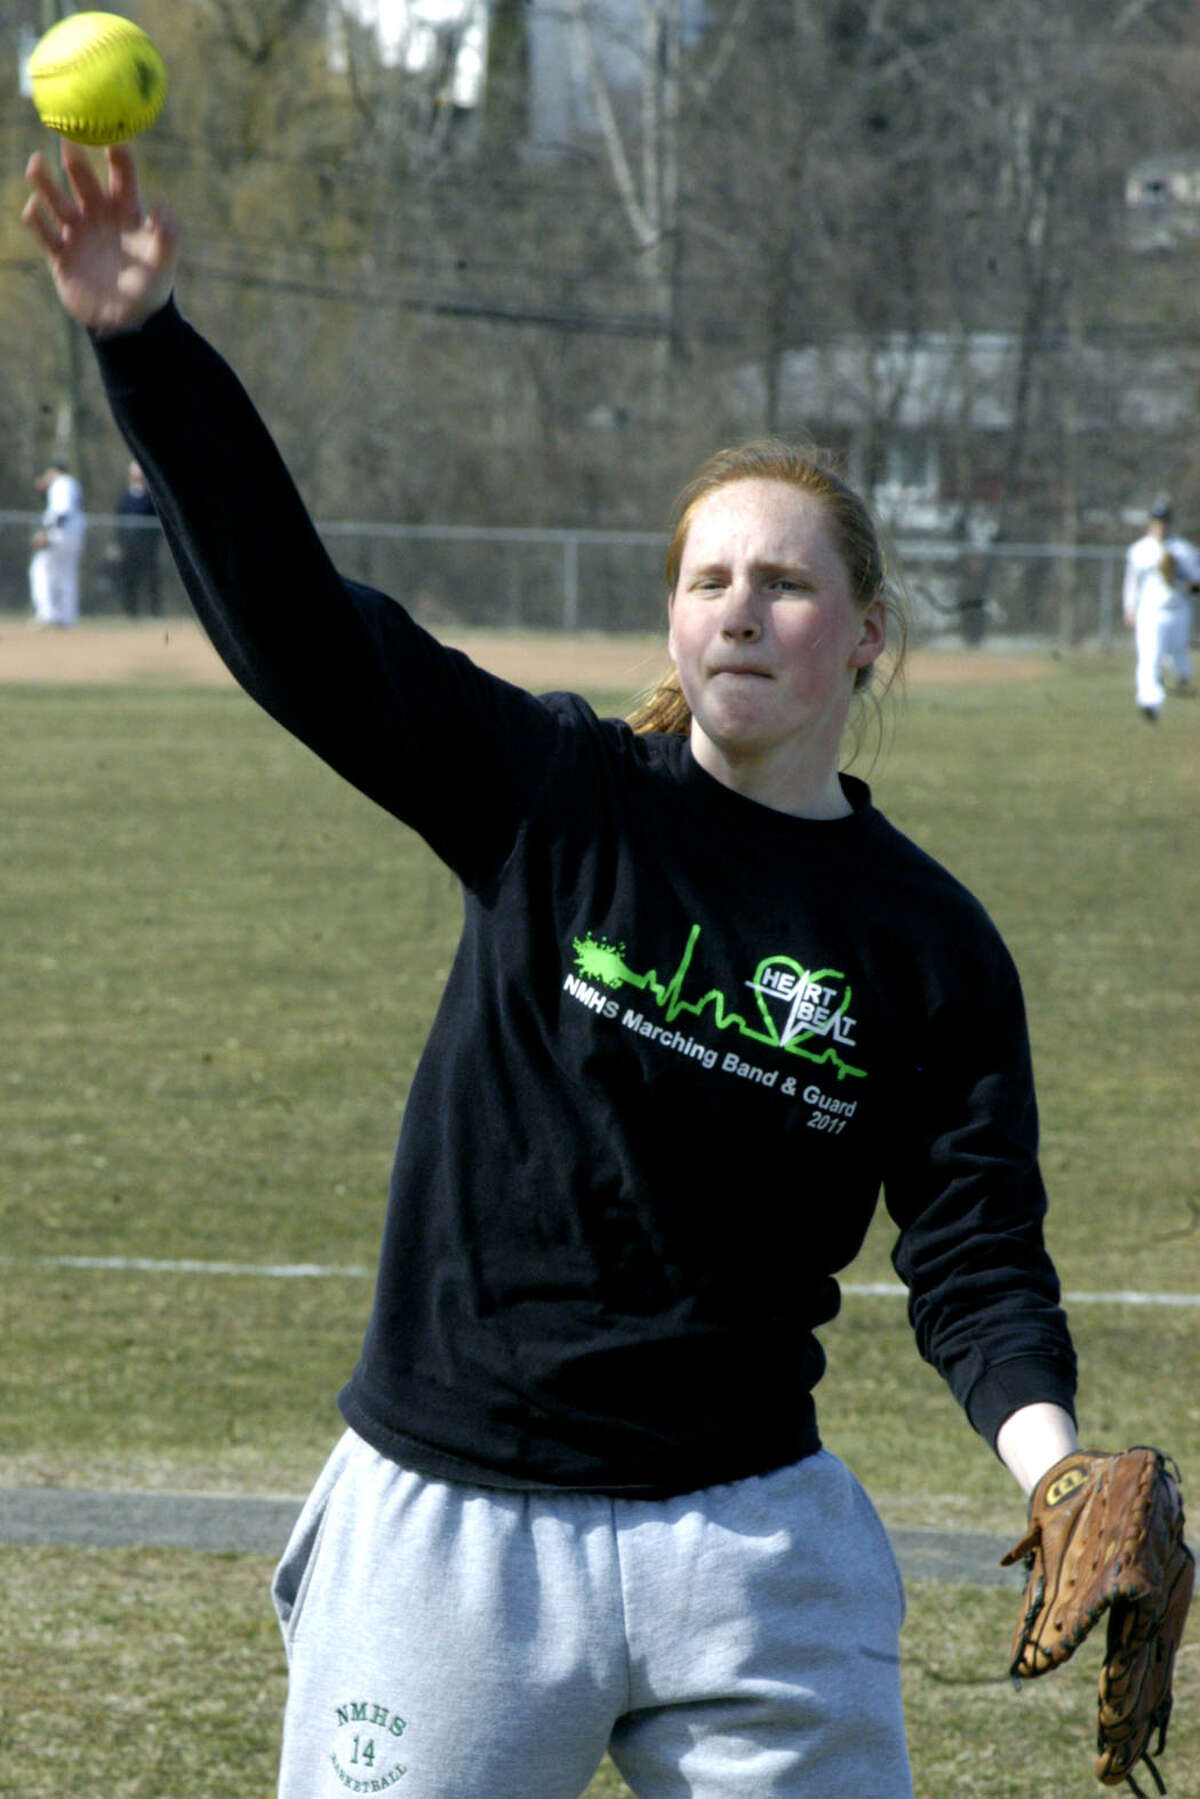 Maggie Grubb brings lots of experience to her role as Green Wave third baseman for New Milford High School softball. April 2013